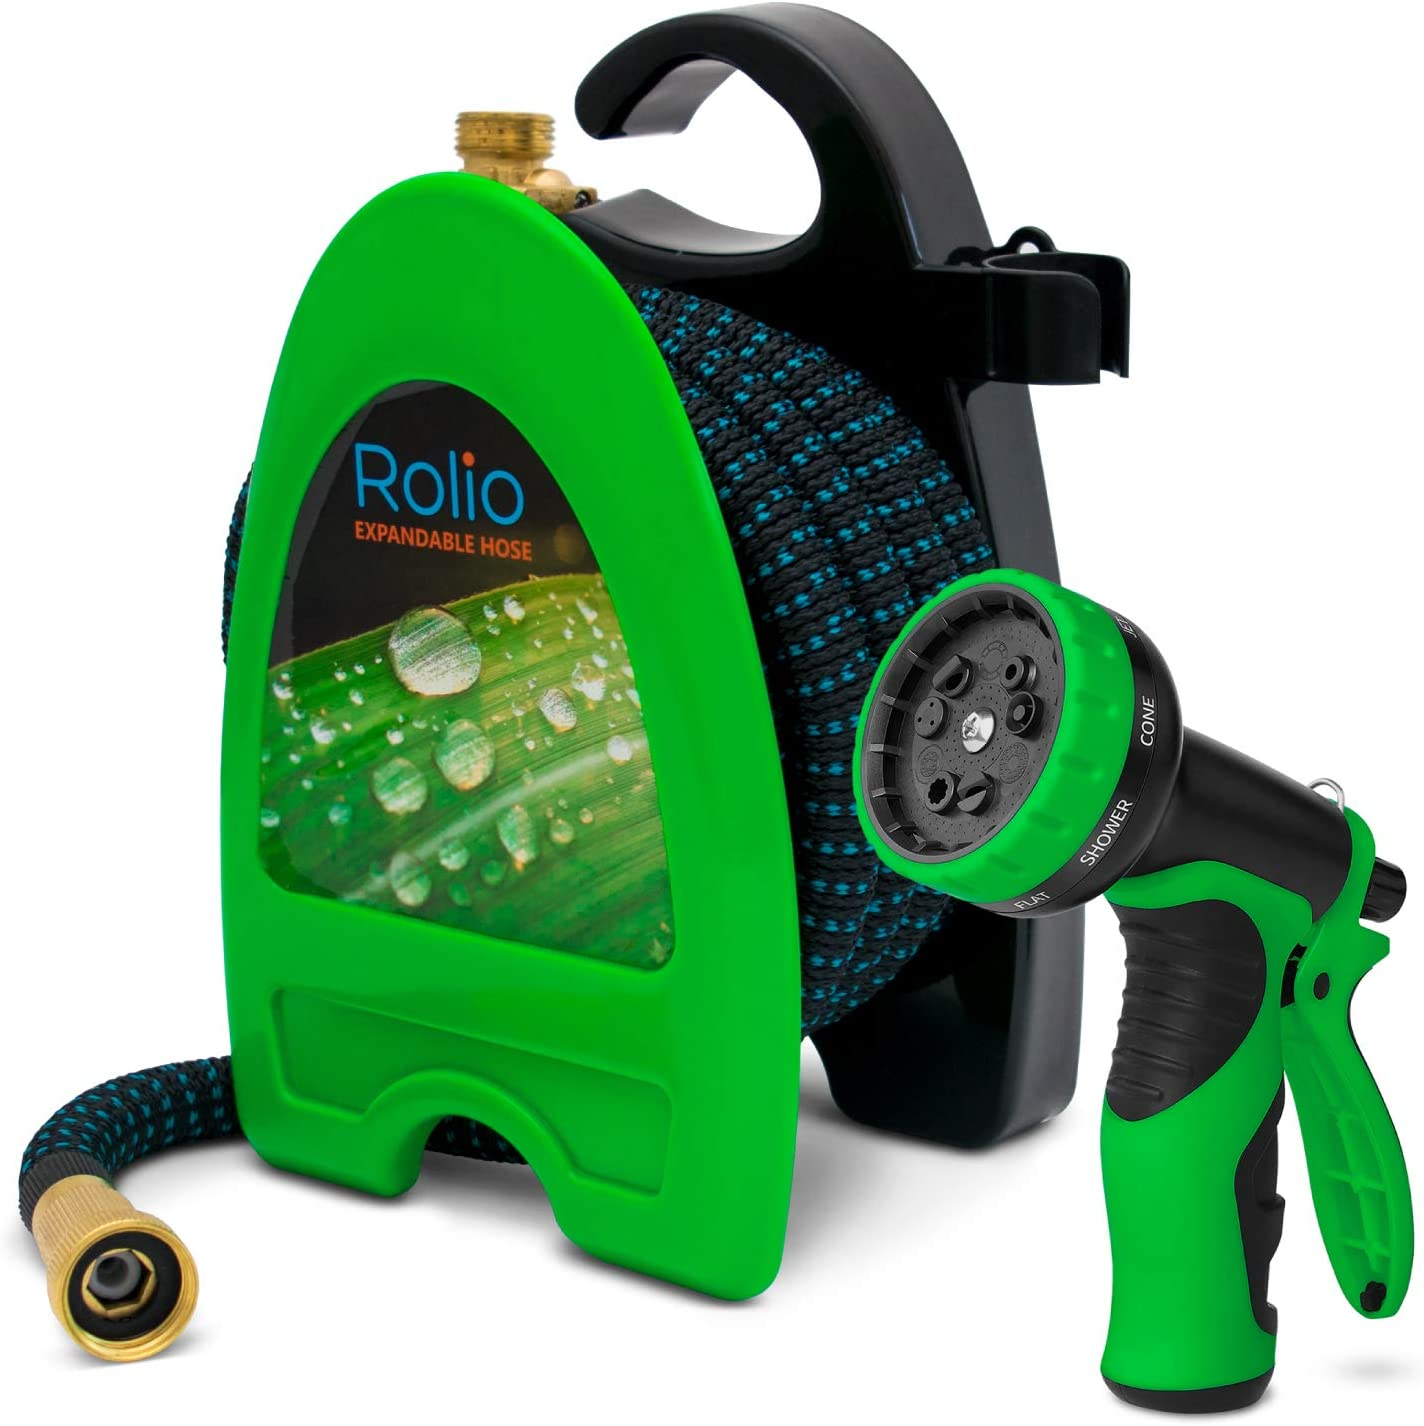 Rolio - Expandable Hose - Retractable Garden Hose with Nozzle - 50ft Water Hose with 9 Function Spray Nozzle